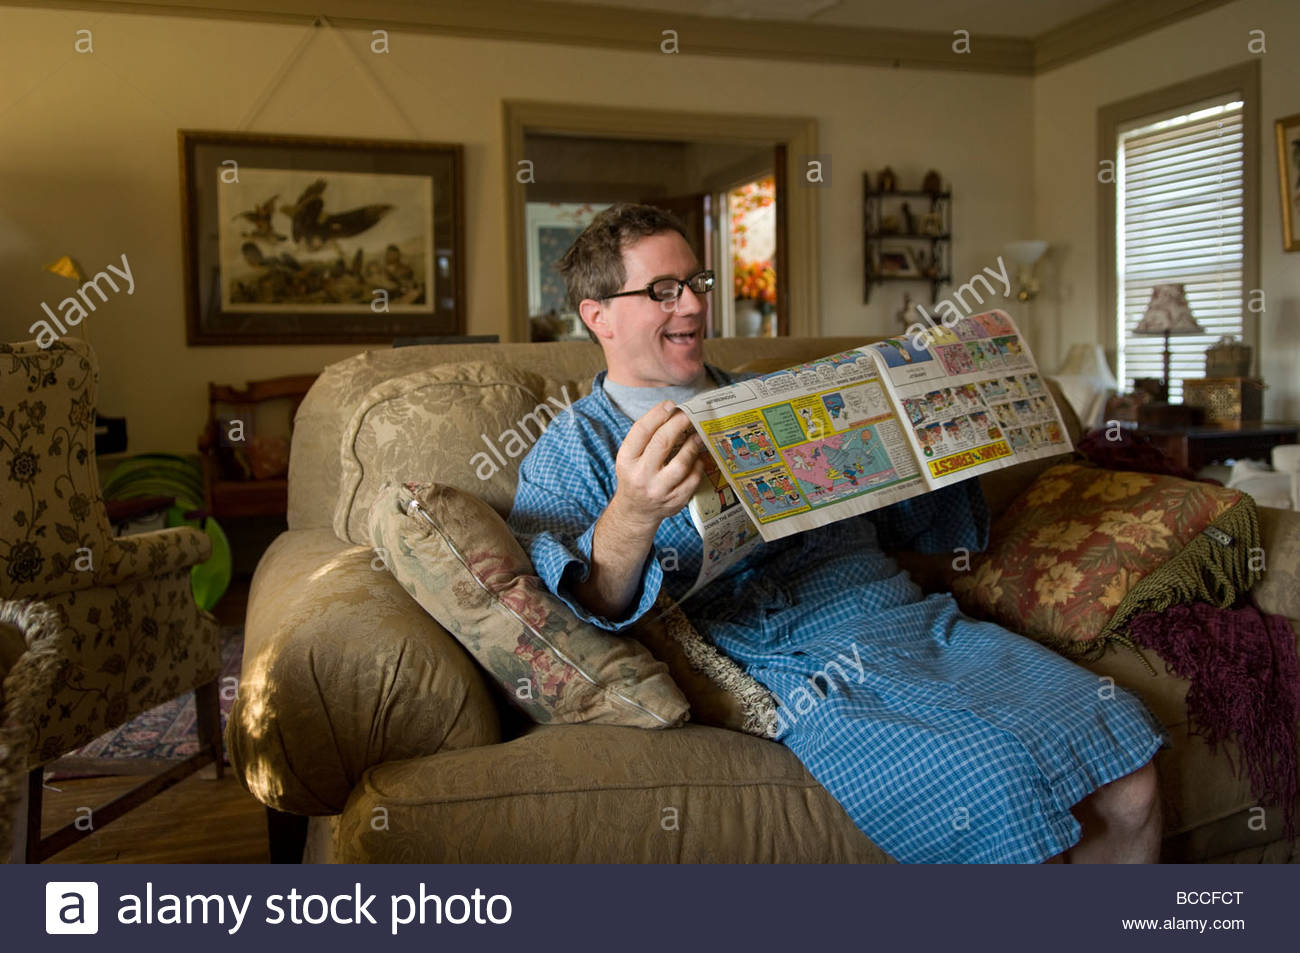 A man reads the comics from the morning newspaper. - Stock Image